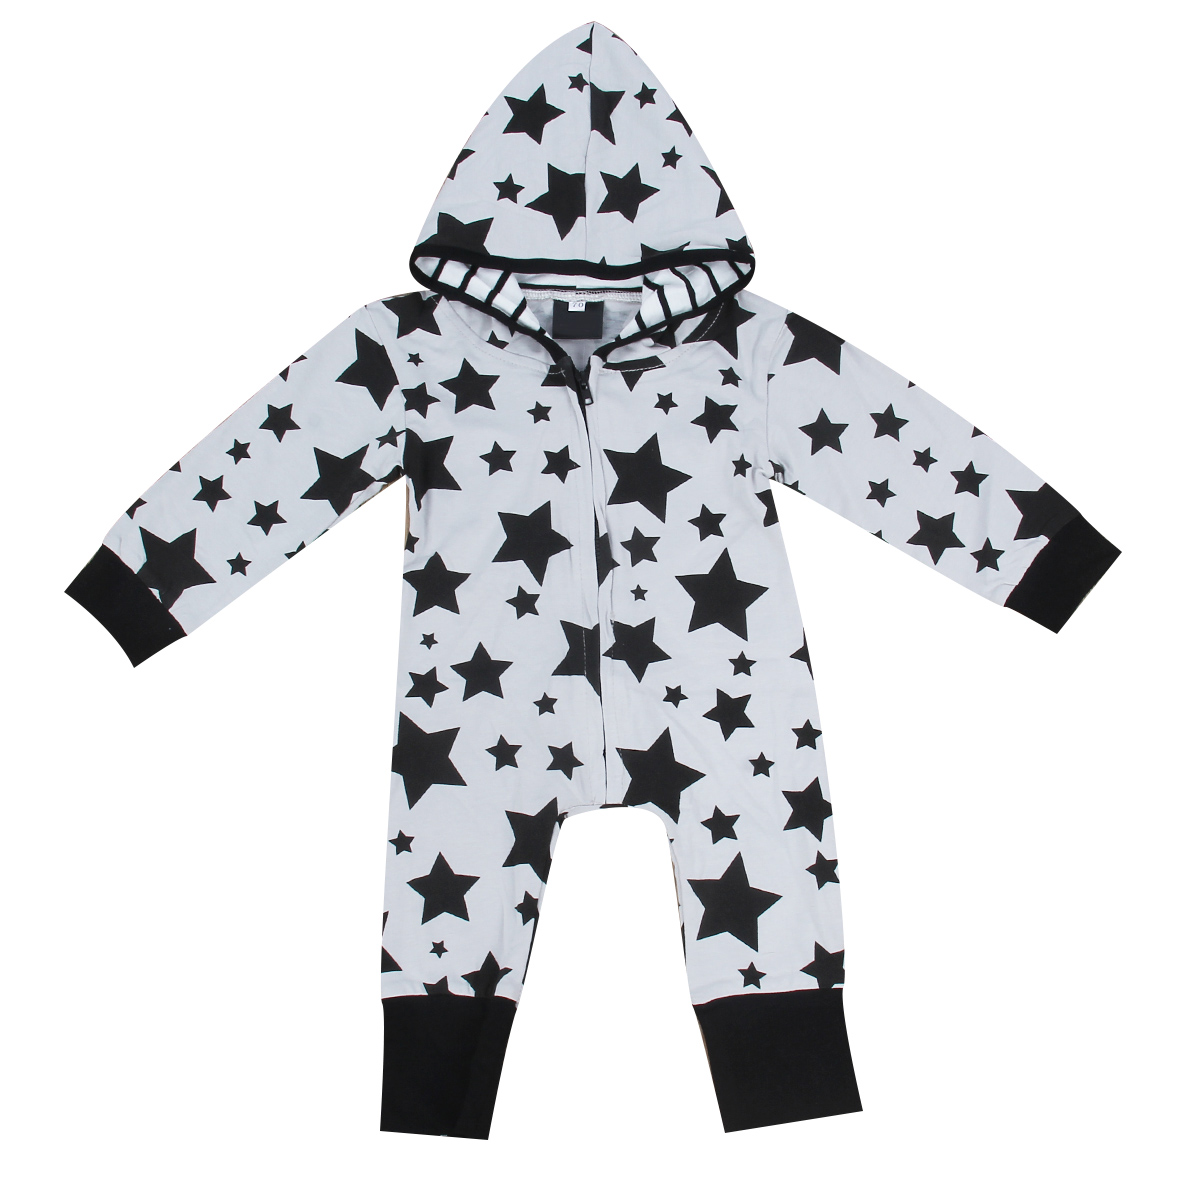 Autumn Toddler Kids Rompers Newborn Baby Boy Girl Infant Hooded Romper Jumpsuit Camo Star Playsuit Outfit Sweatshirt Clothes puseky 2017 infant romper baby boys girls jumpsuit newborn bebe clothing hooded toddler baby clothes cute panda romper costumes